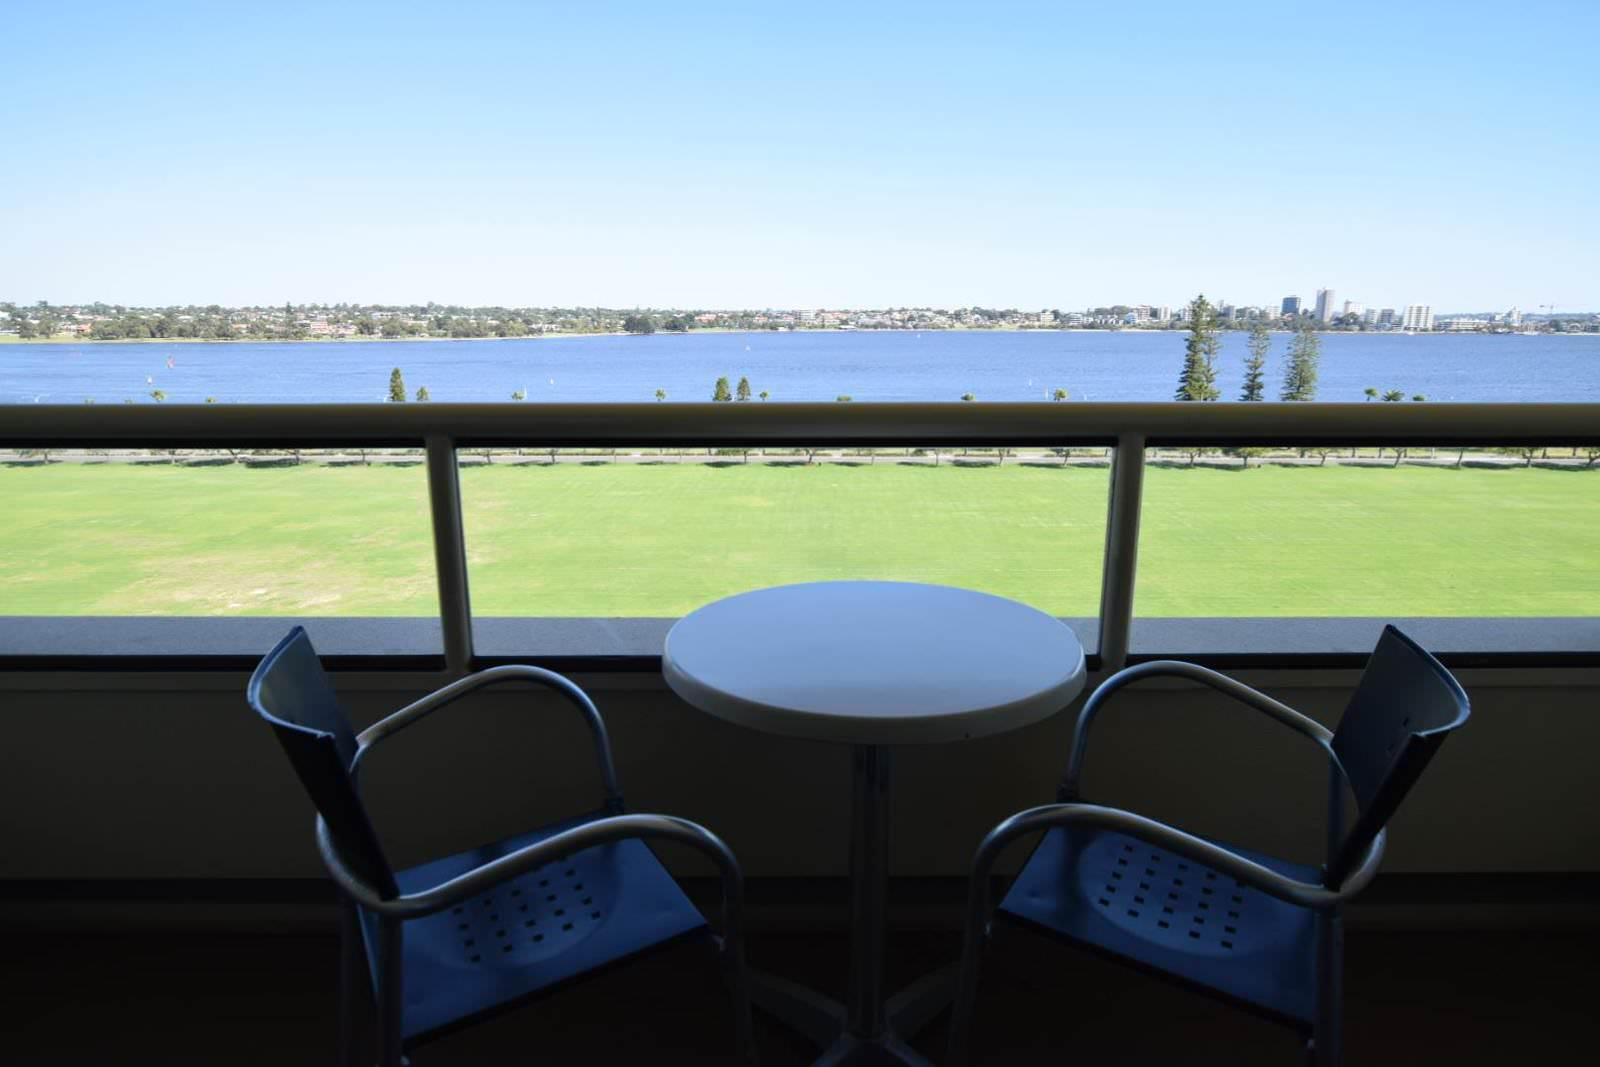 Crowne Plaza Perth A Wonderful Hotel Experience Enhanced by an Expected Reunion Balcony